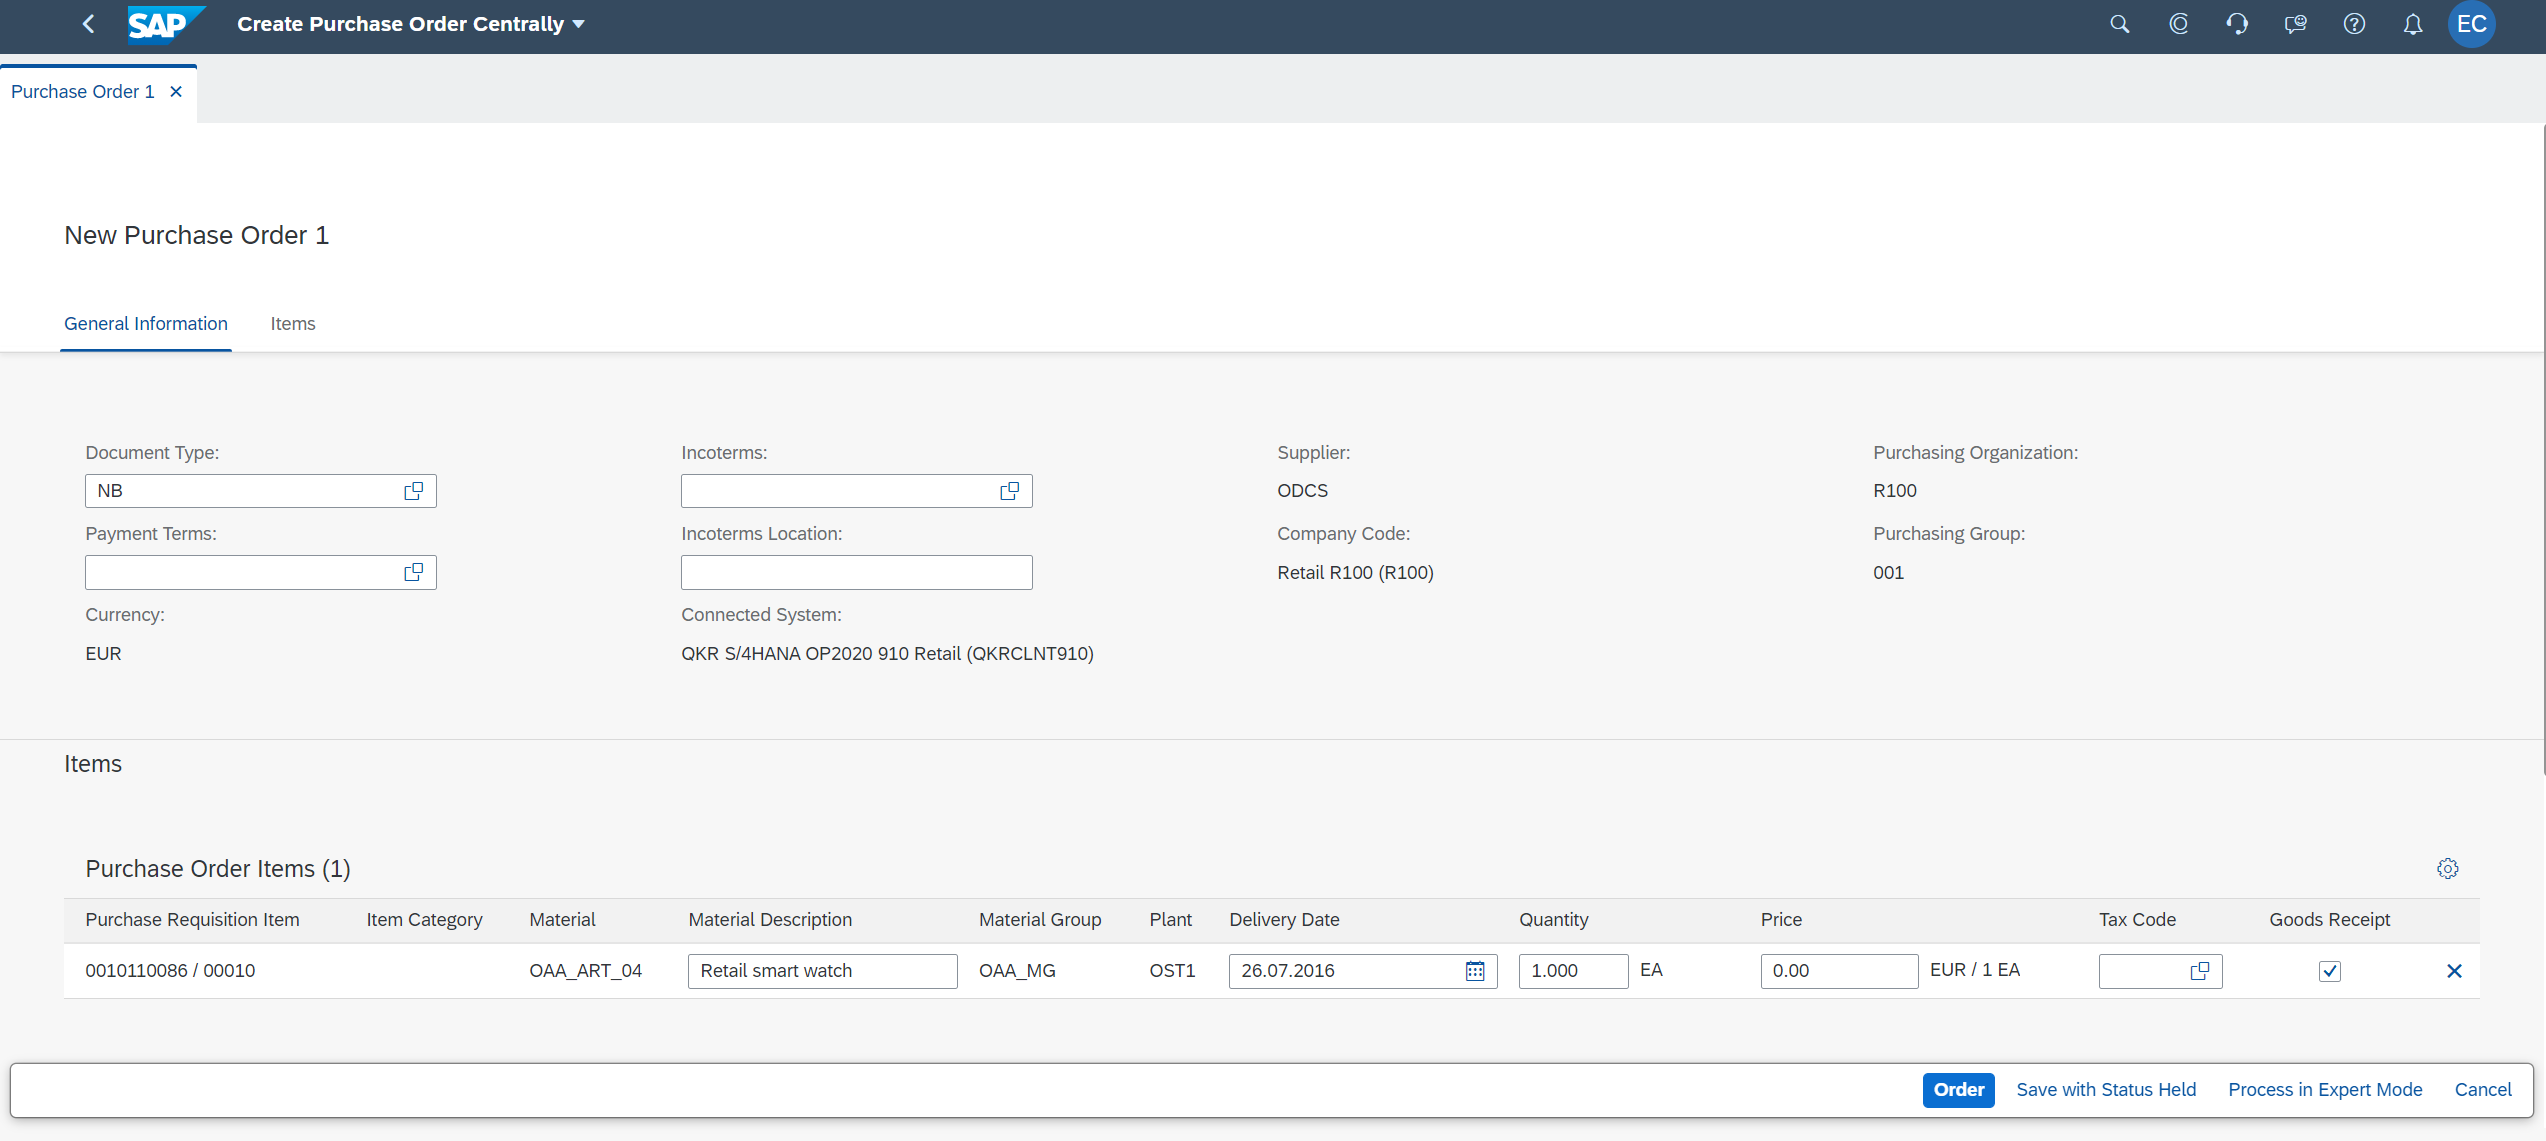 Create%20Purchase%20Order%20with%20Order%20Status%20from%20a%20purchase%20requisition%20belonging%20to%20a%20S/4%20HANA%20connected%20system